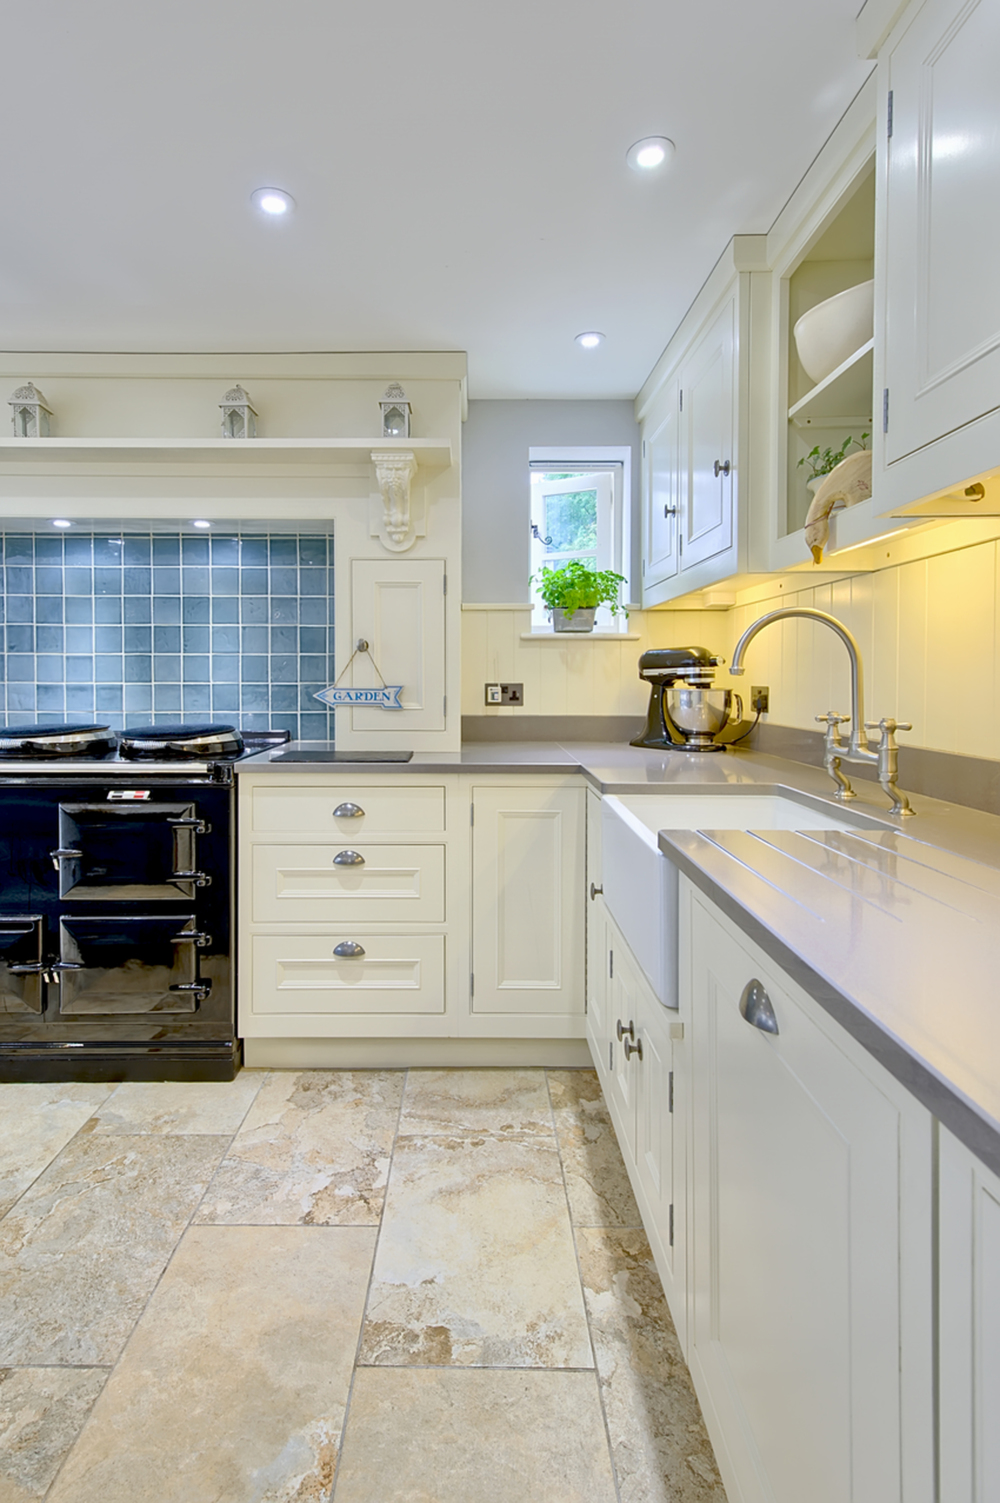 Kitchen sink of a house redesign by Harvey Norman Architects Cambridge